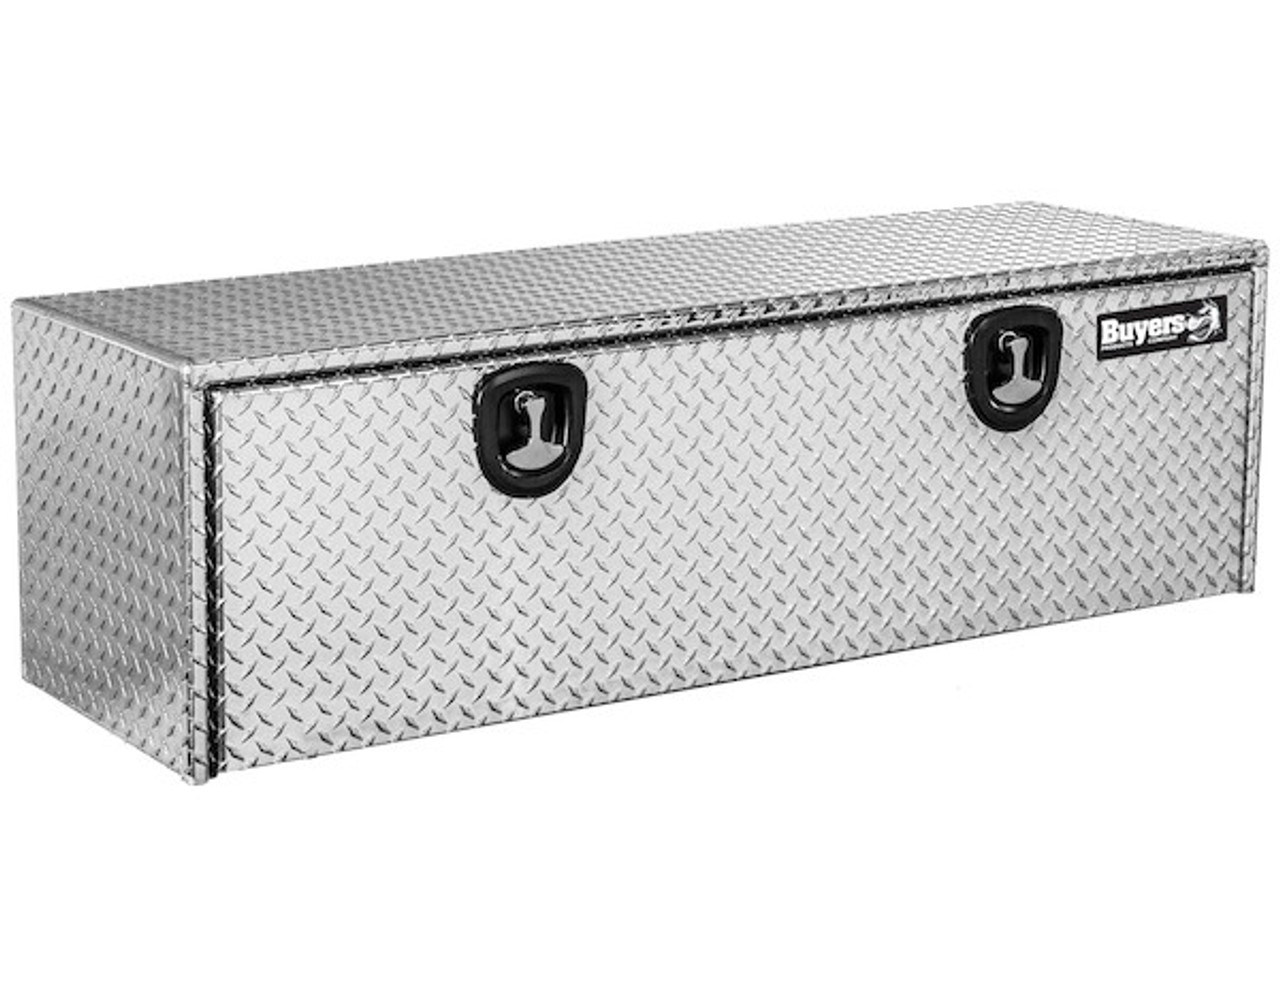 "1705147 BUYERS PRODUCTS DIAMOND TREAD ALUMINUM UNDERBODY TRUCK TOOLBOX 24""HX24""DX72""W"